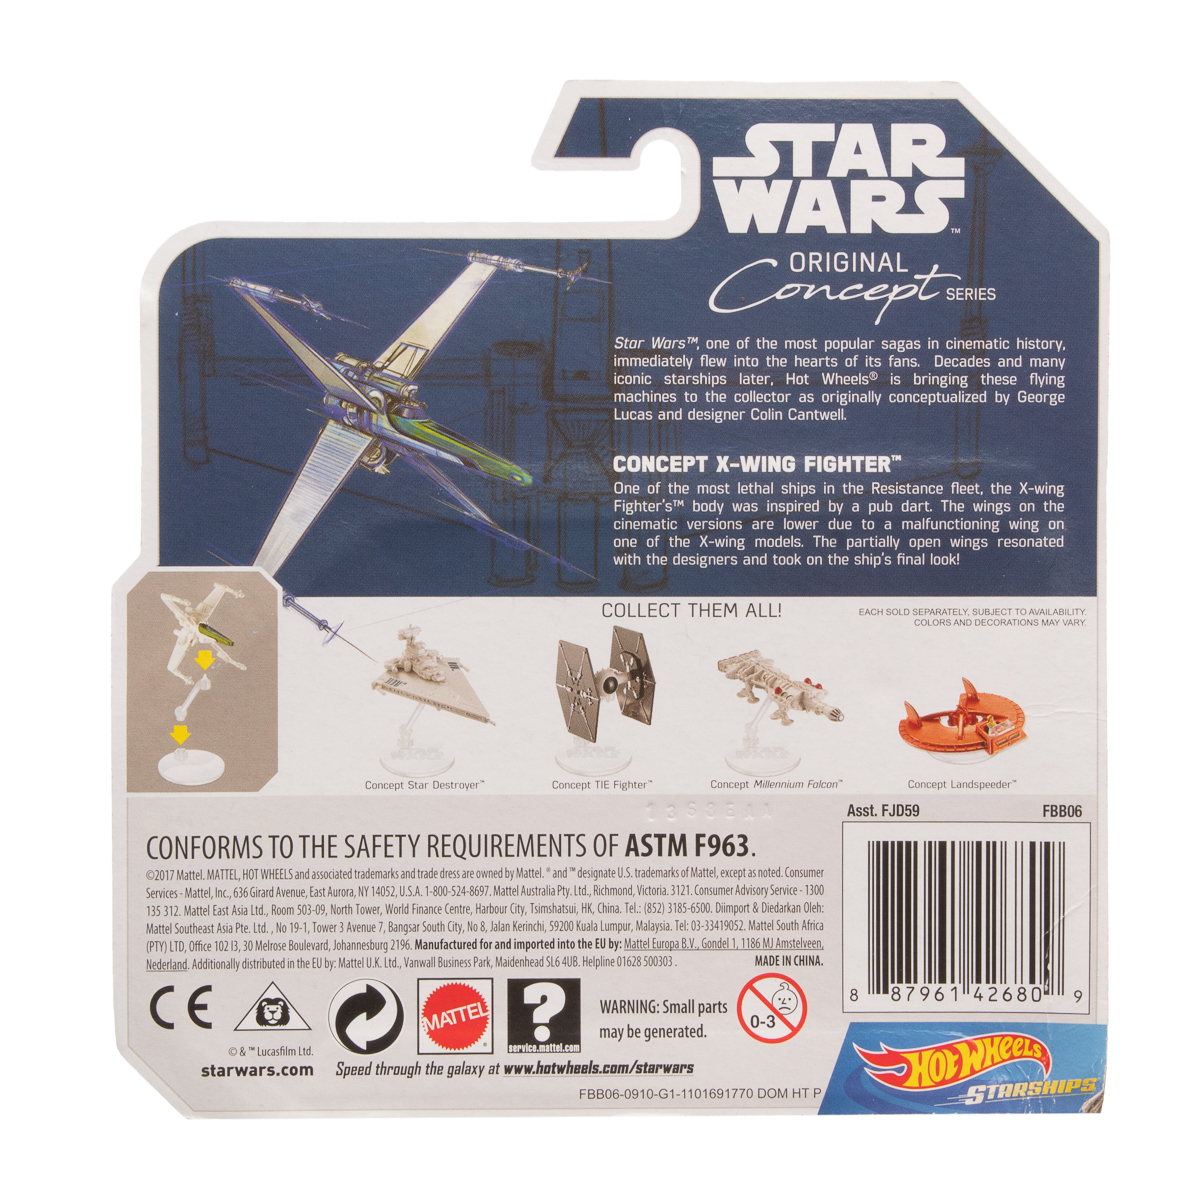 Hot-Wheels-Disney-Star-Wars-Original-Concept-Starships-Diecast-Model-Toys-Stands thumbnail 28